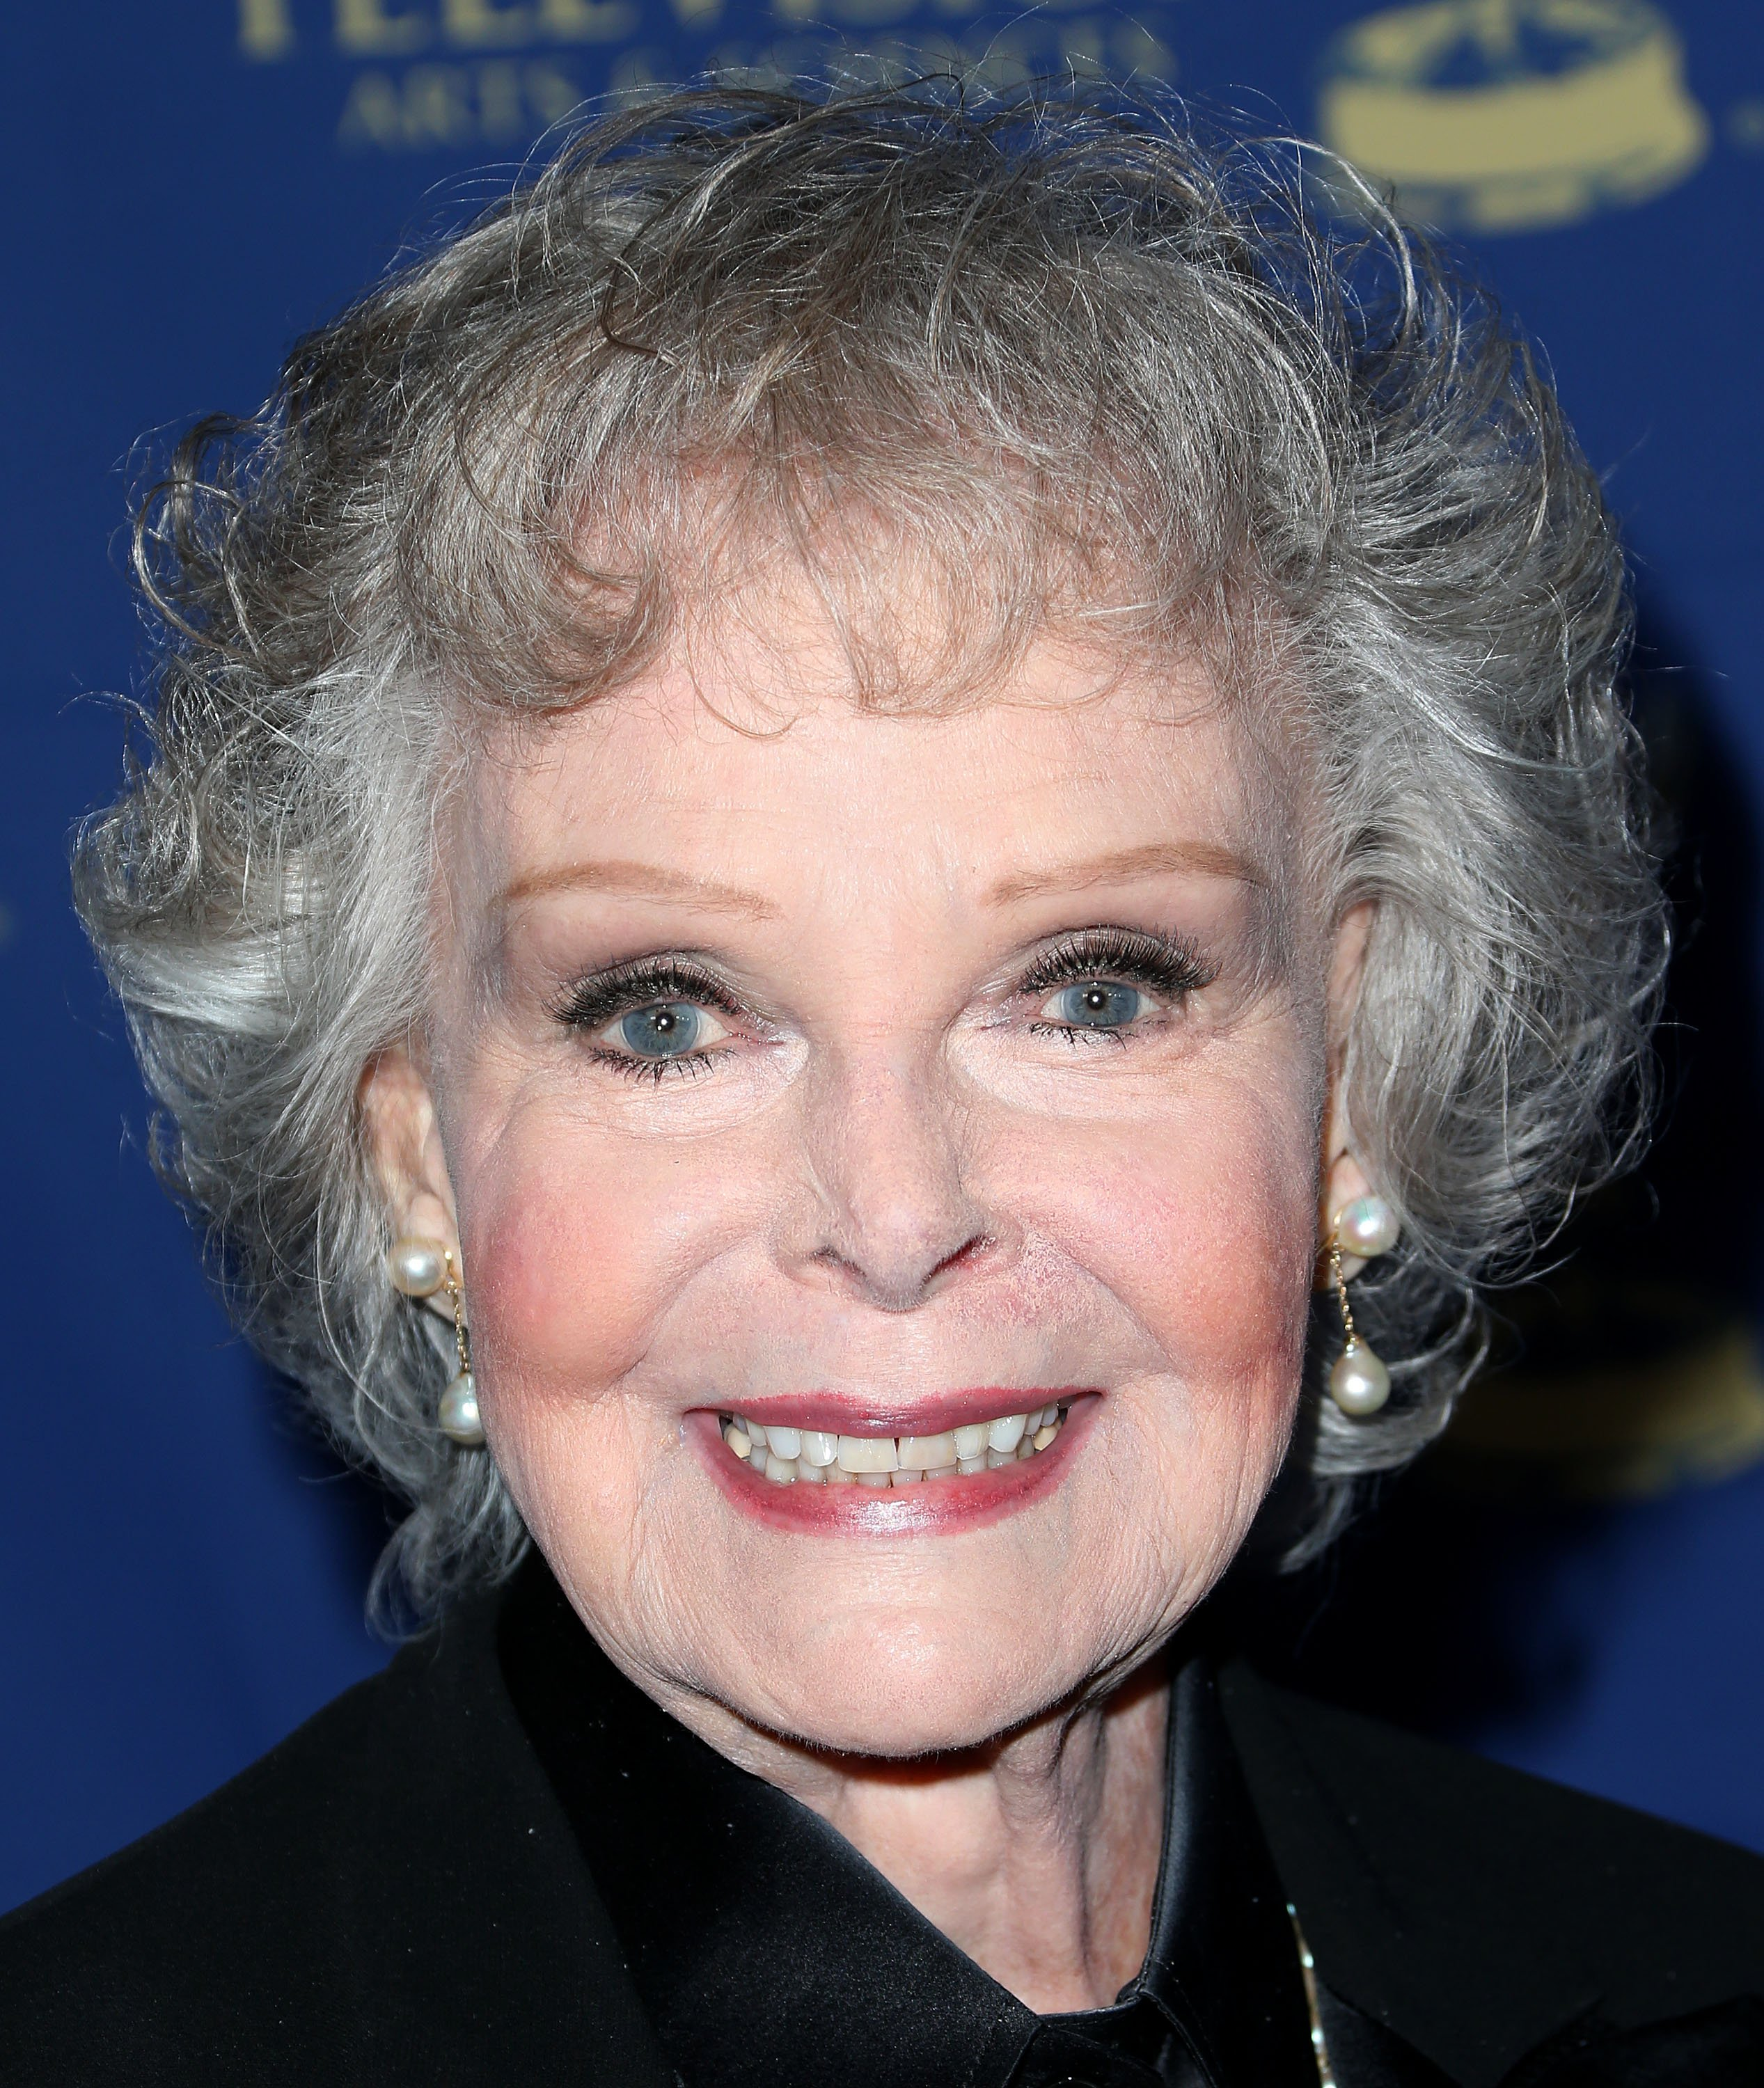 June Lockhart. I Image: Getty Image.